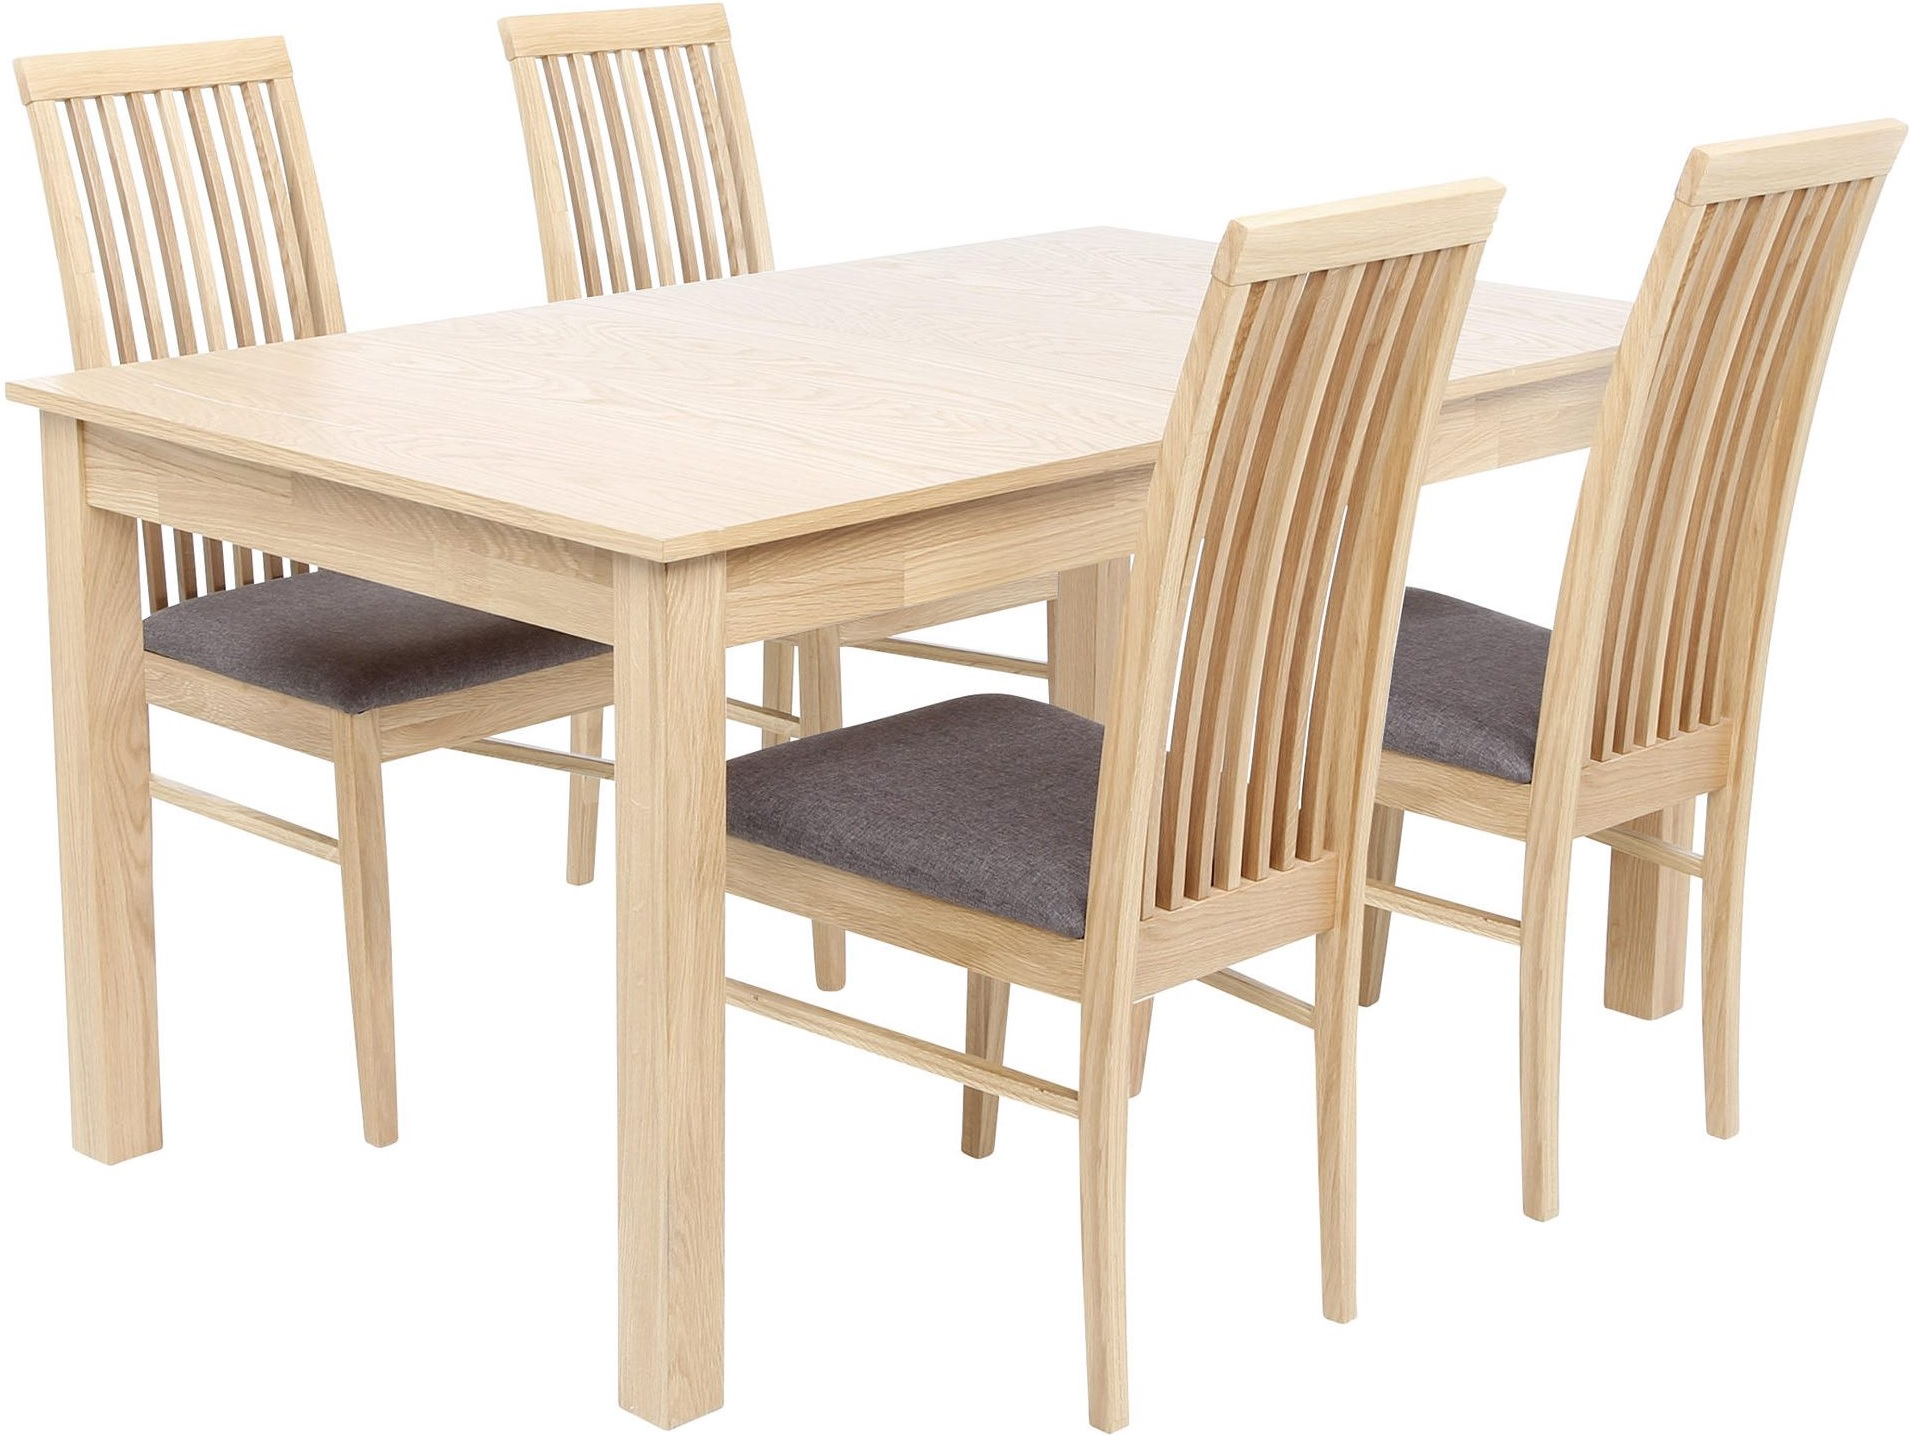 Beech Dining Table And Chairs Madrid Large Dining Table  : 07976975520a from sherlockdesigner.com size 1911 x 1436 jpeg 435kB